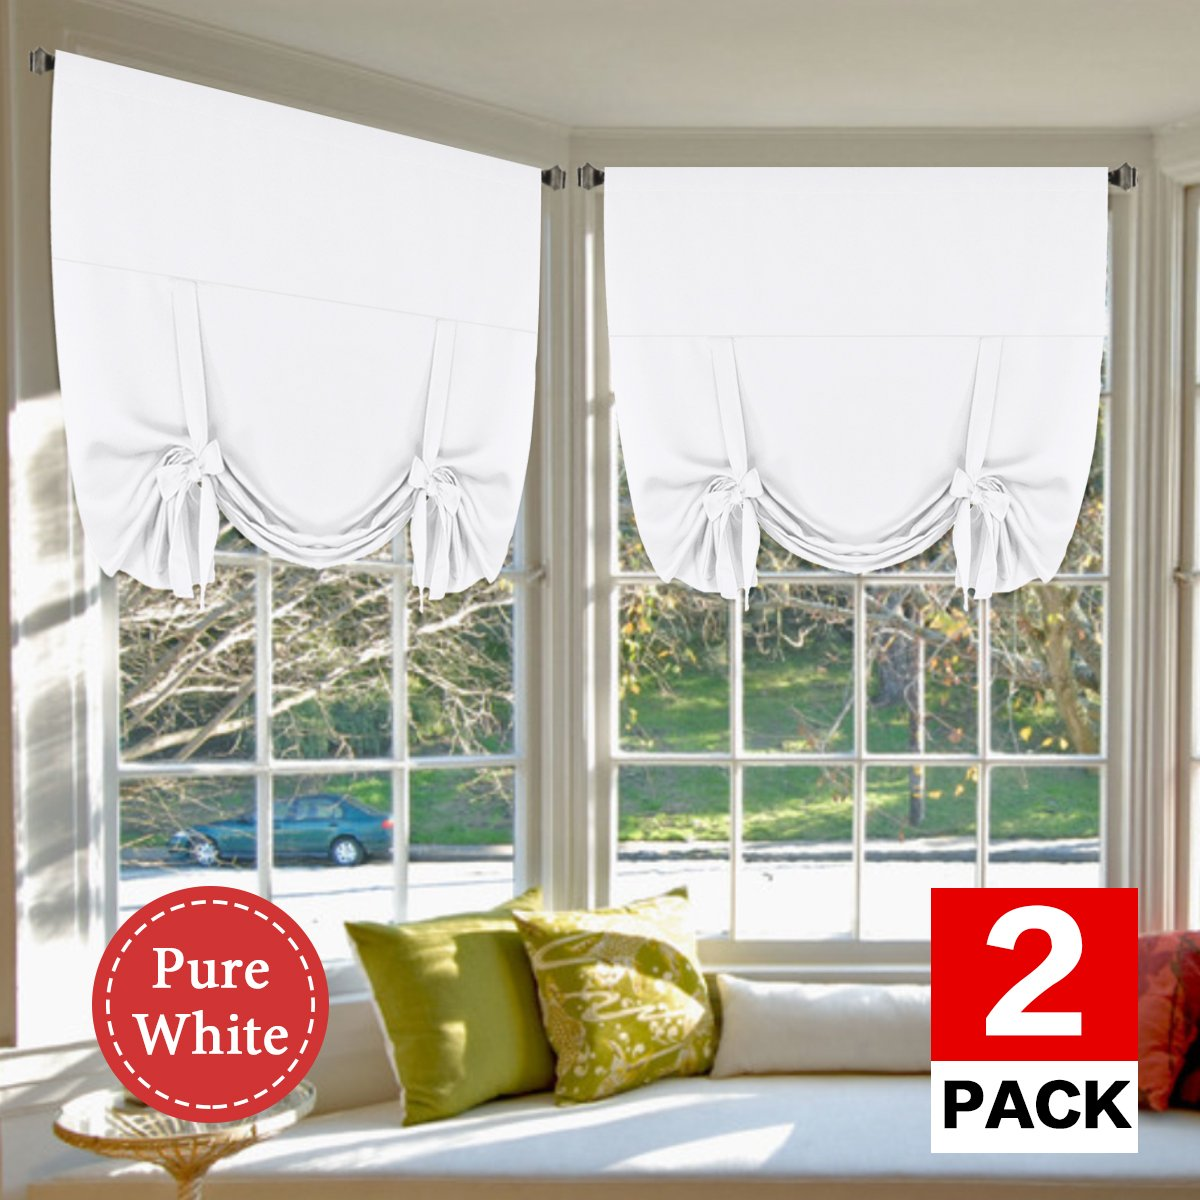 H.VERSAILTEX Pure White Curtains Home Decoration Easy Care Thermal Insulated Solid Rod Pocket Light Blocking Panels/Drapes for Kitchen, 2 Panels, 42W x 63L